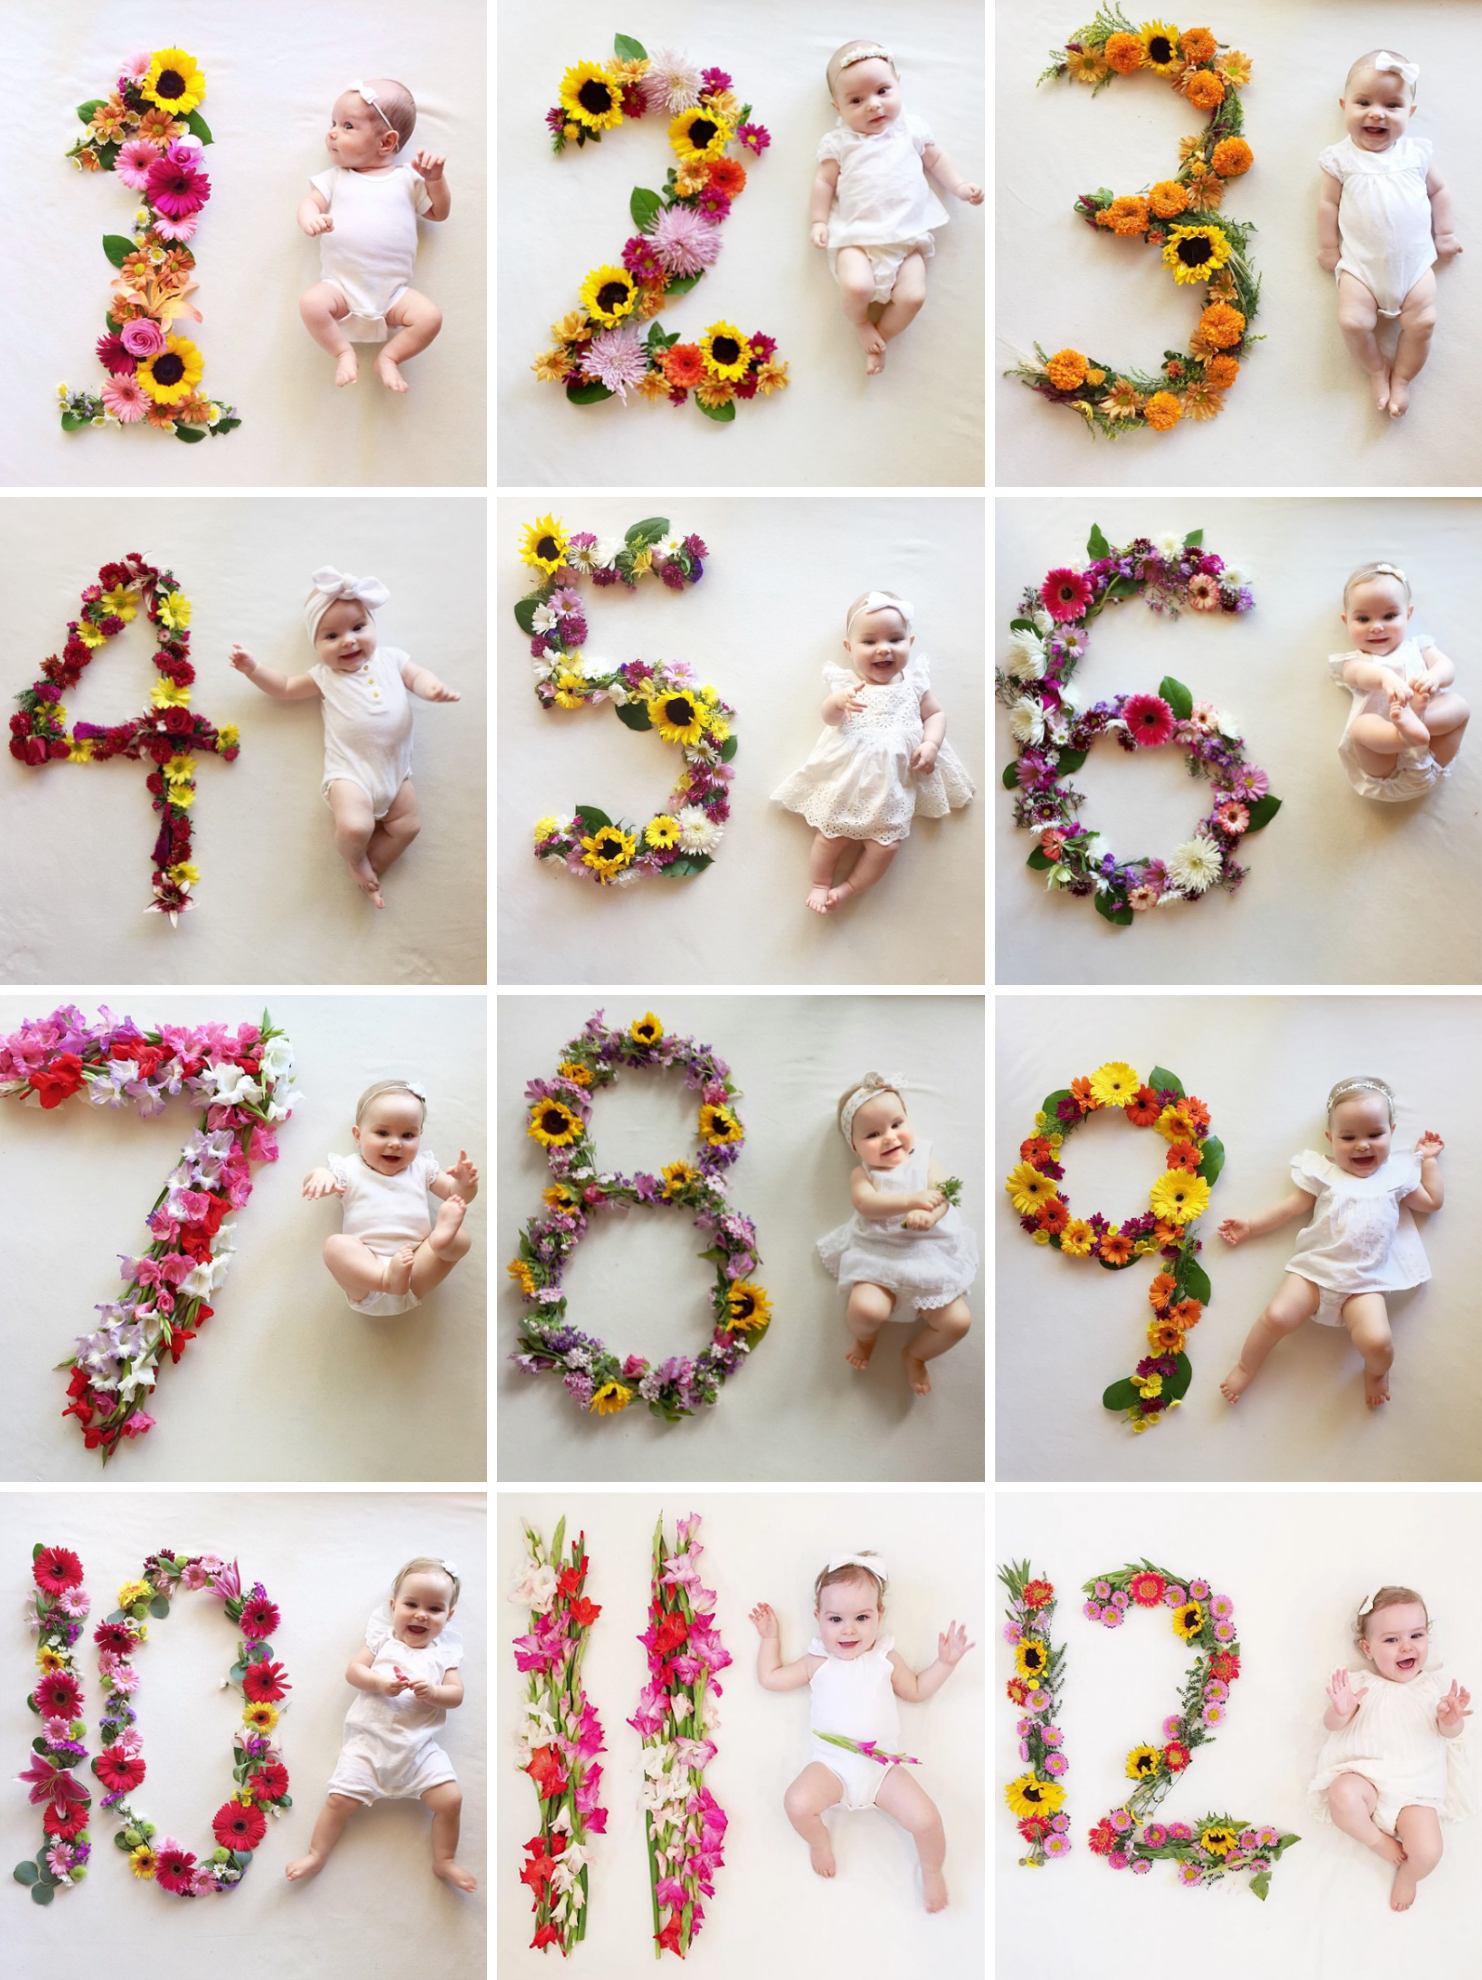 Newborn Photo Trend: Floral Wreaths | Mein kleiner Schatz ...